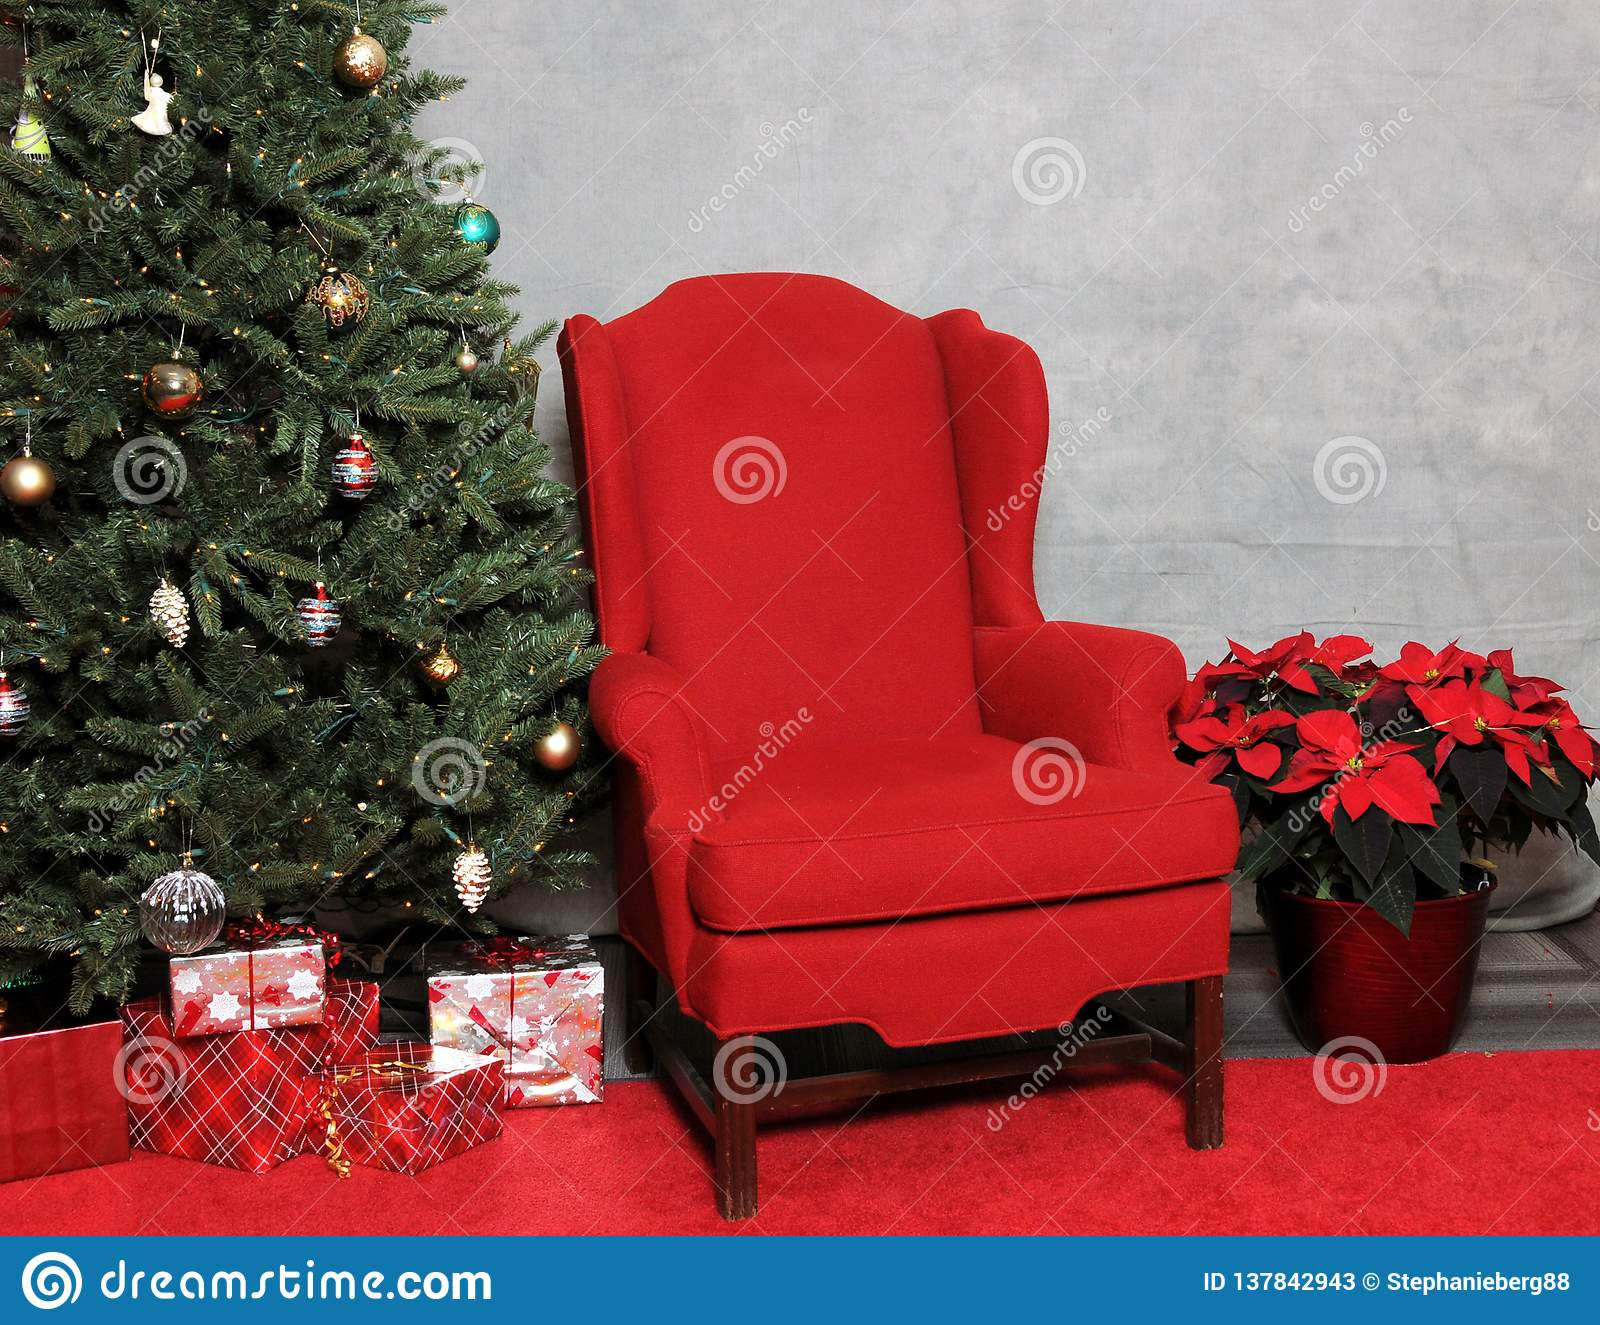 Santa`s Red Chair with Gifts and a Decorated Christmas Tree